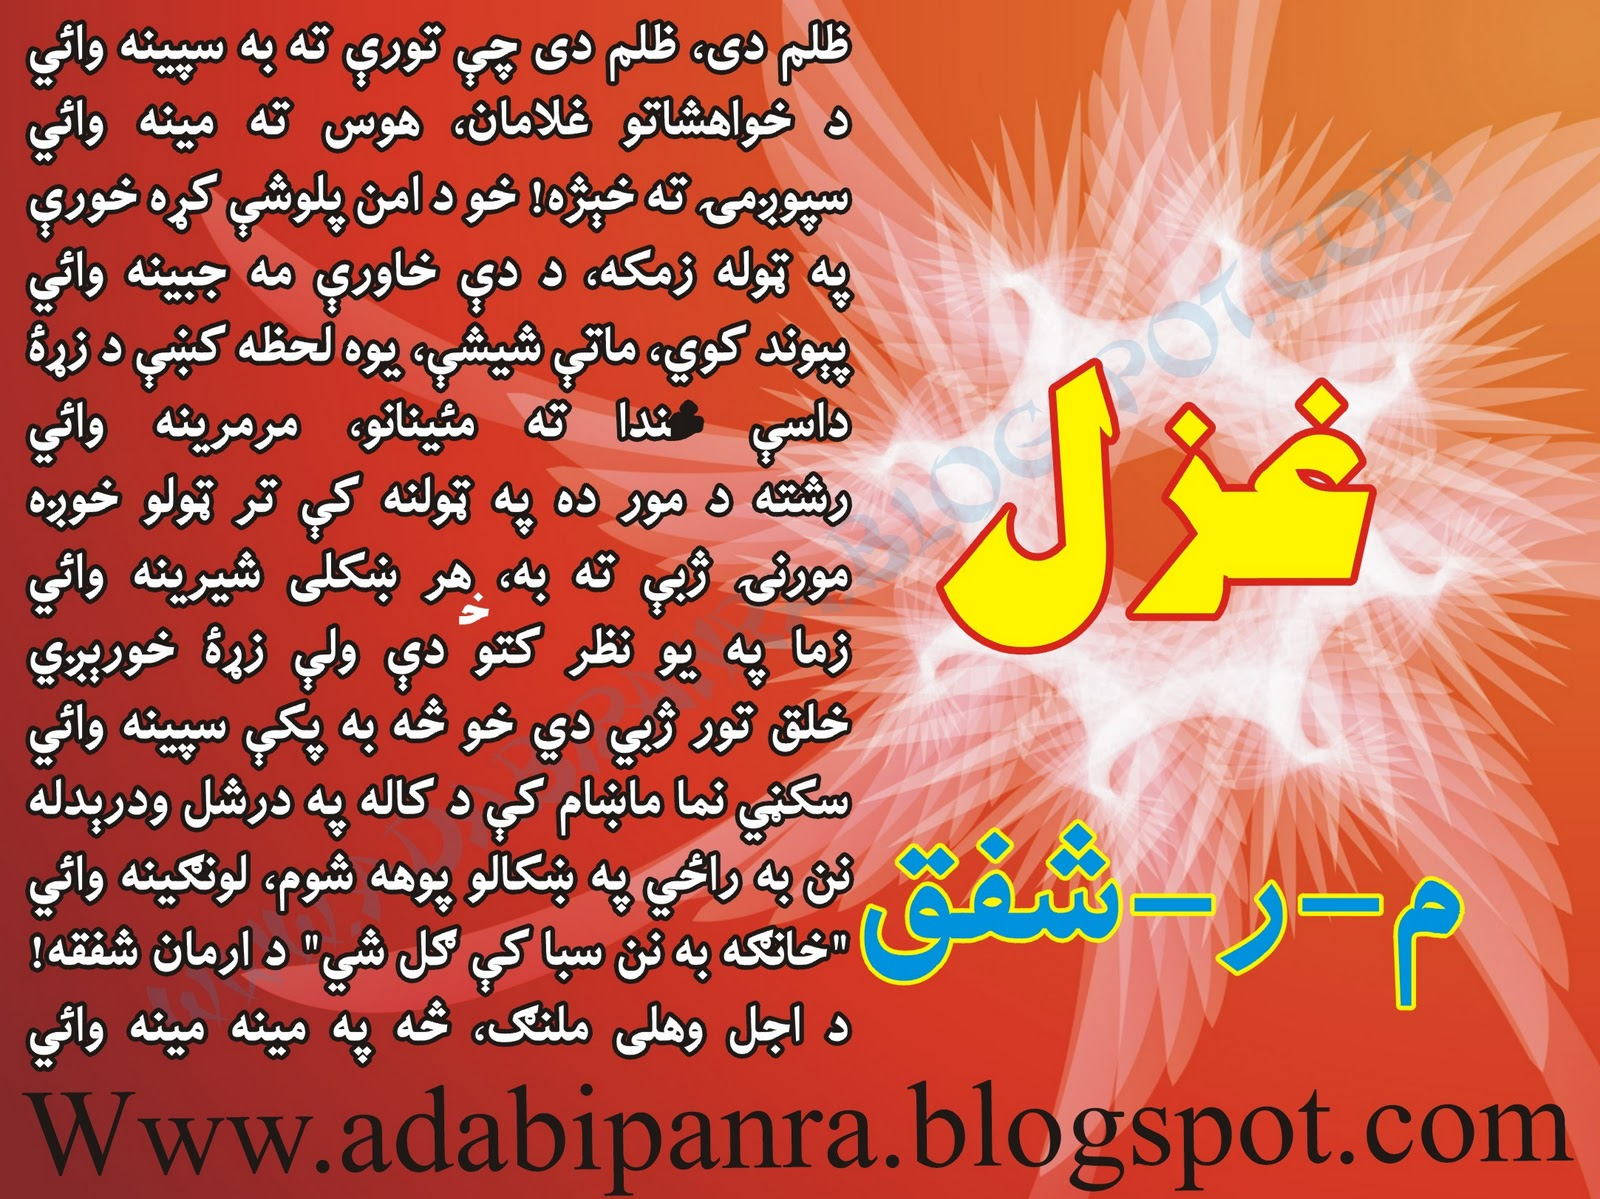 Pashto Poetry Panra: Ghazal, Mem Re Shafaq